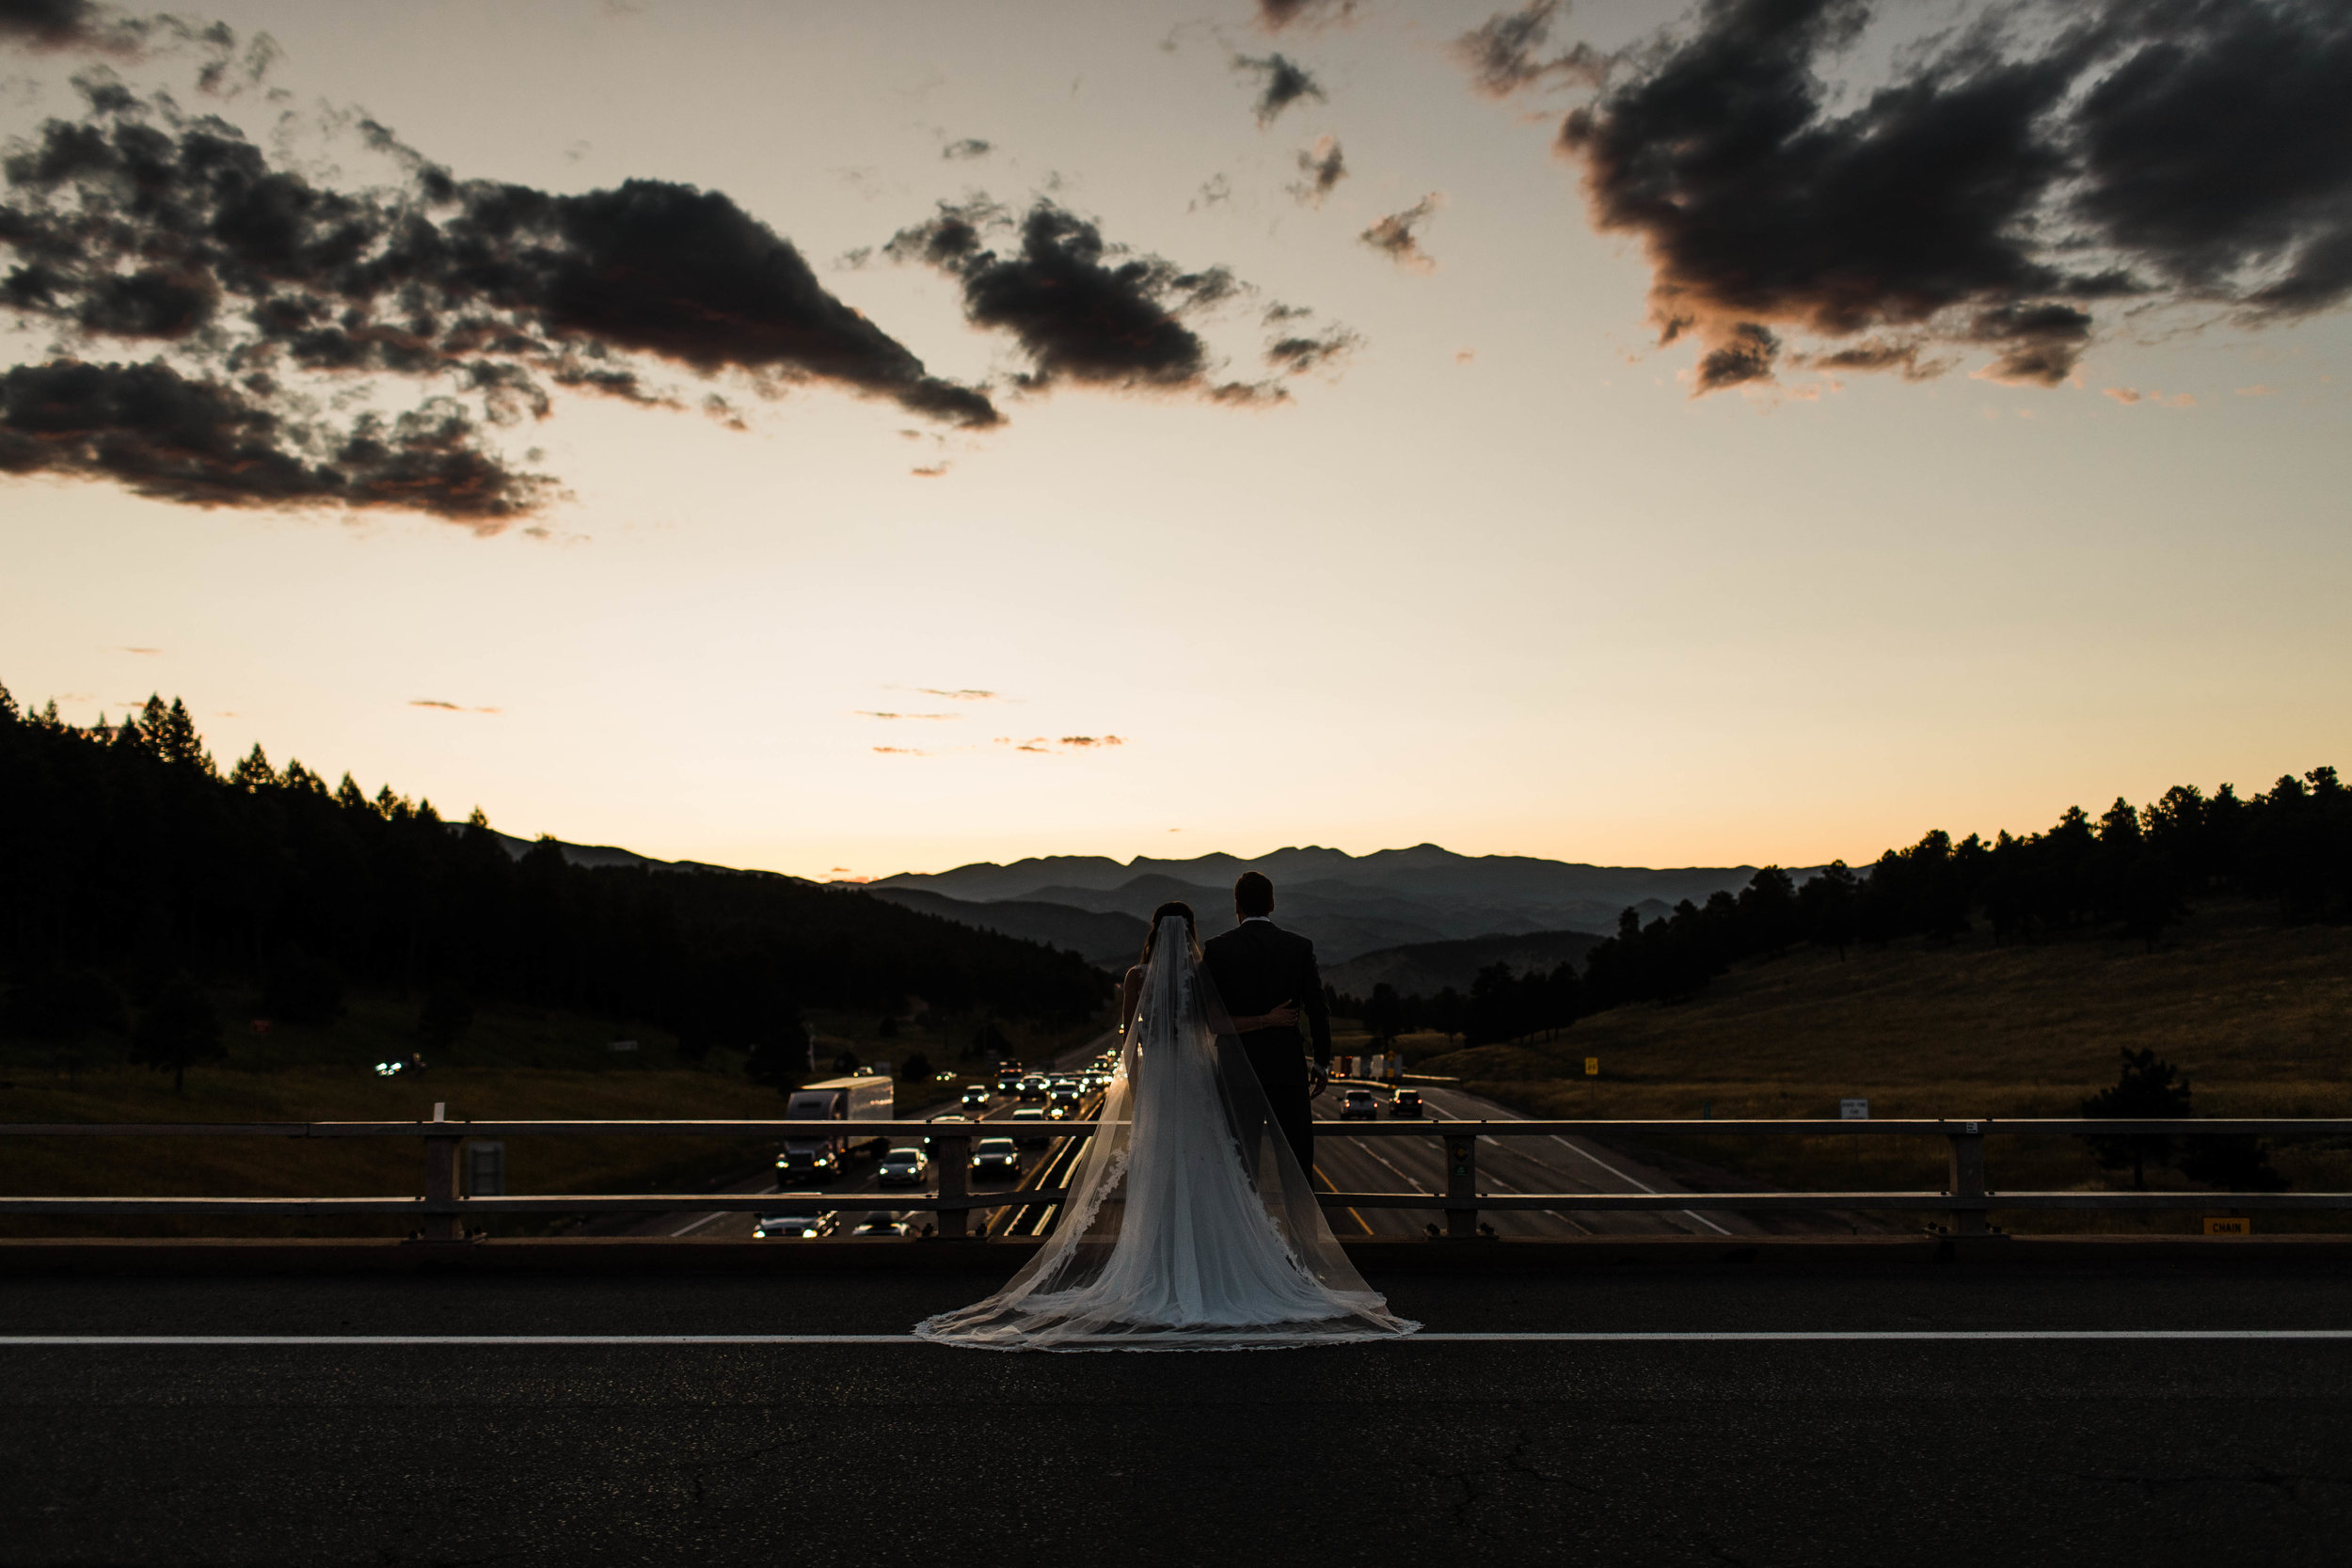 Intimate wedding at sunset in Colorado on i70 | Best Colorado elopement photographers